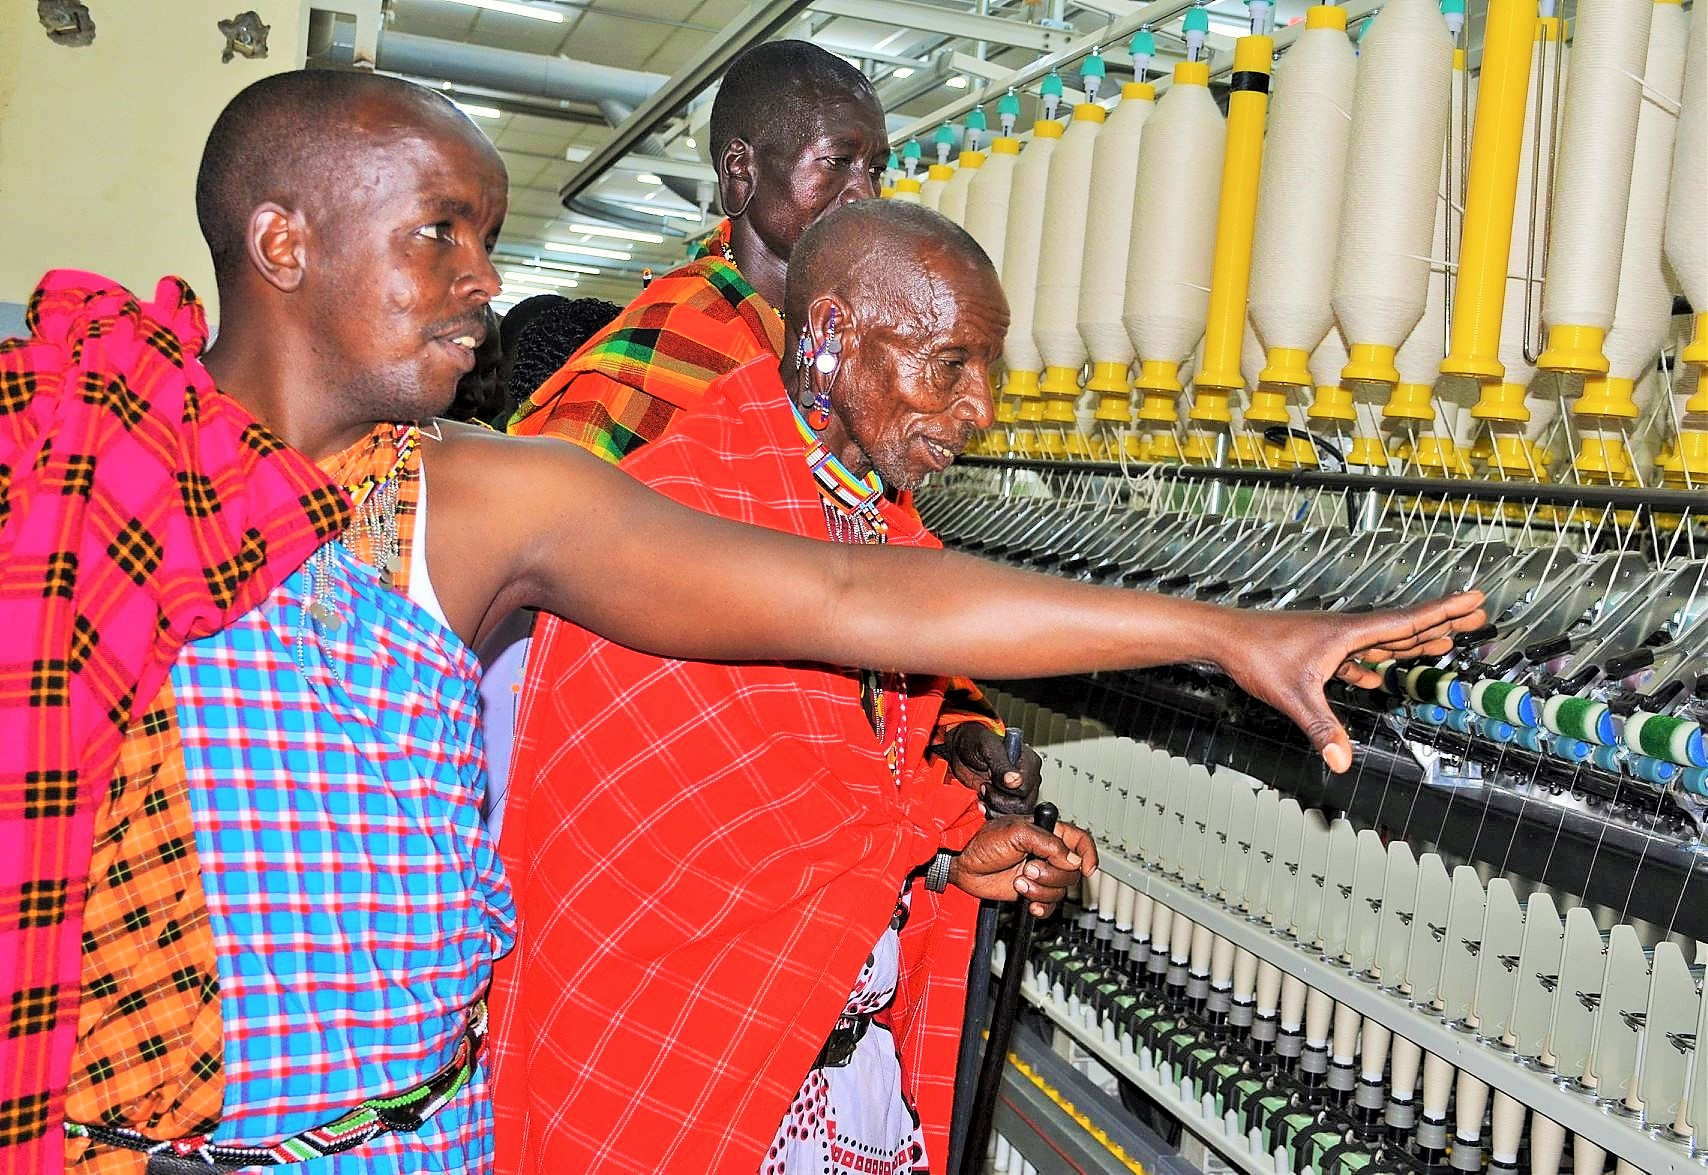 Elders from Naikarra self help group in Narok county marvel at the modernized machines during a visit to our textile facility